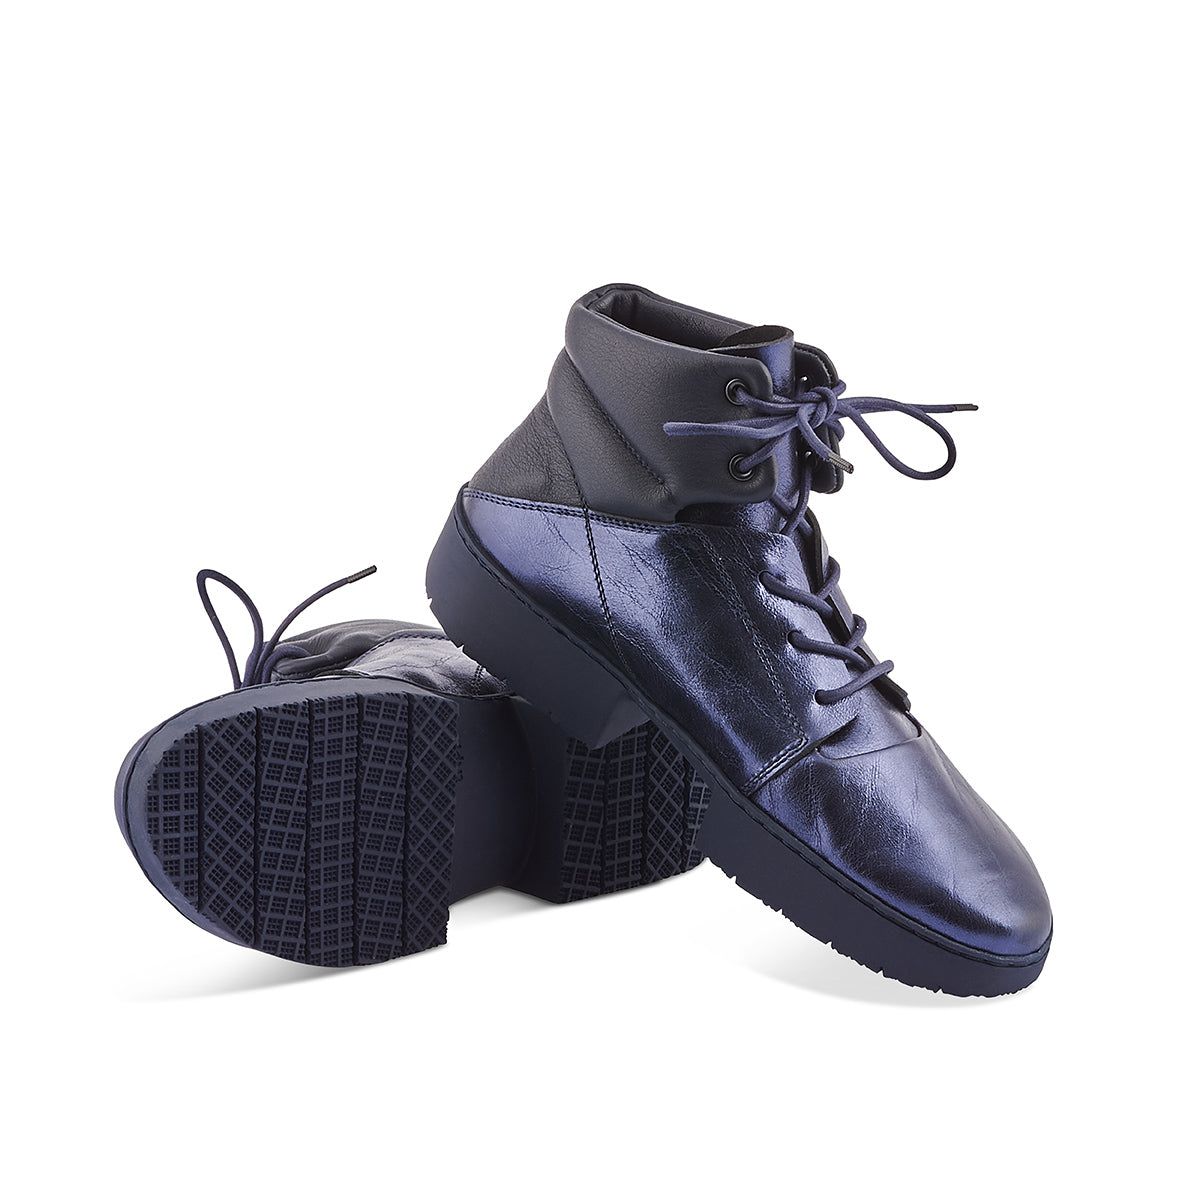 A sporty hightop by Trippen, Jump has a midnight navy metallic leather upper and contrast navy panels at around the ankle. The textured and hard-wearing 'sport' sole is a brilliant option through winter and the contoured leather footbed provides the right amount of support.